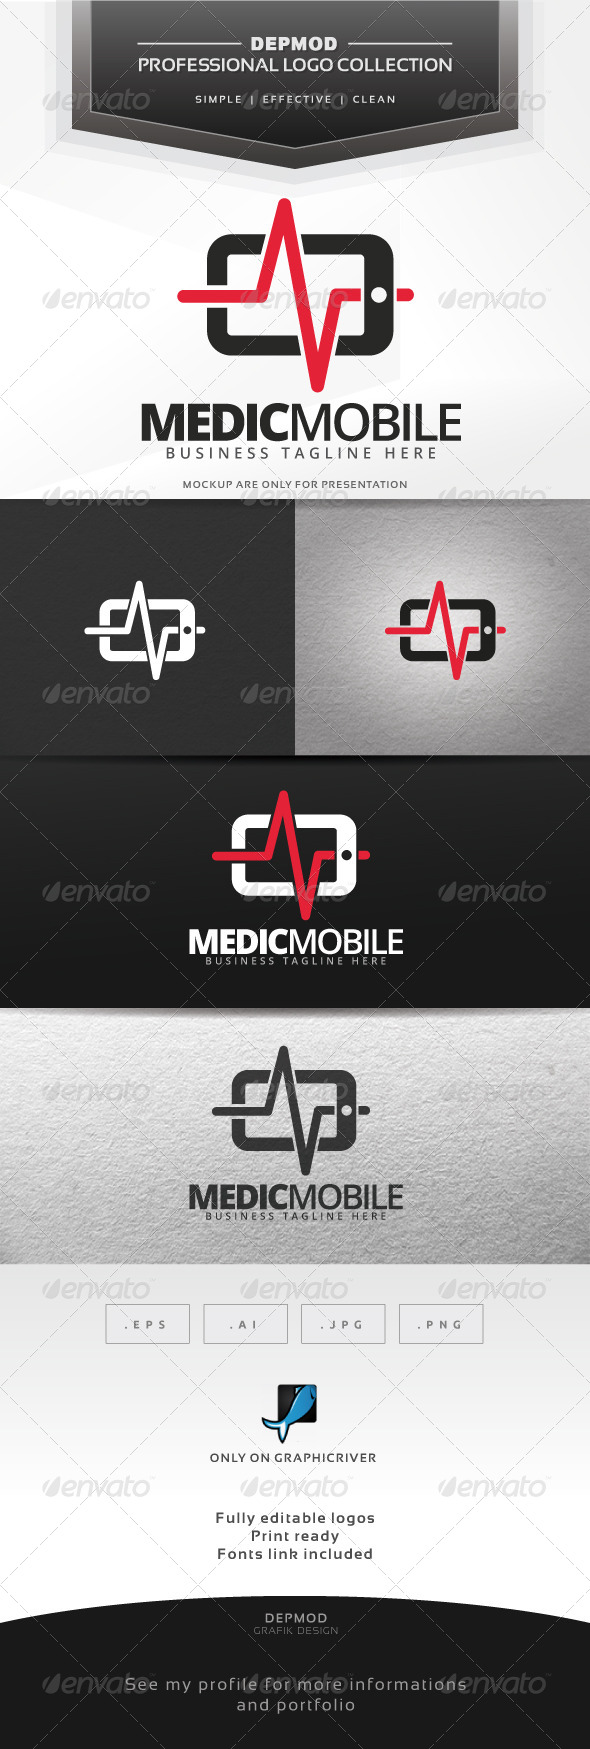 GraphicRiver Medic Mobile Logo 7437932